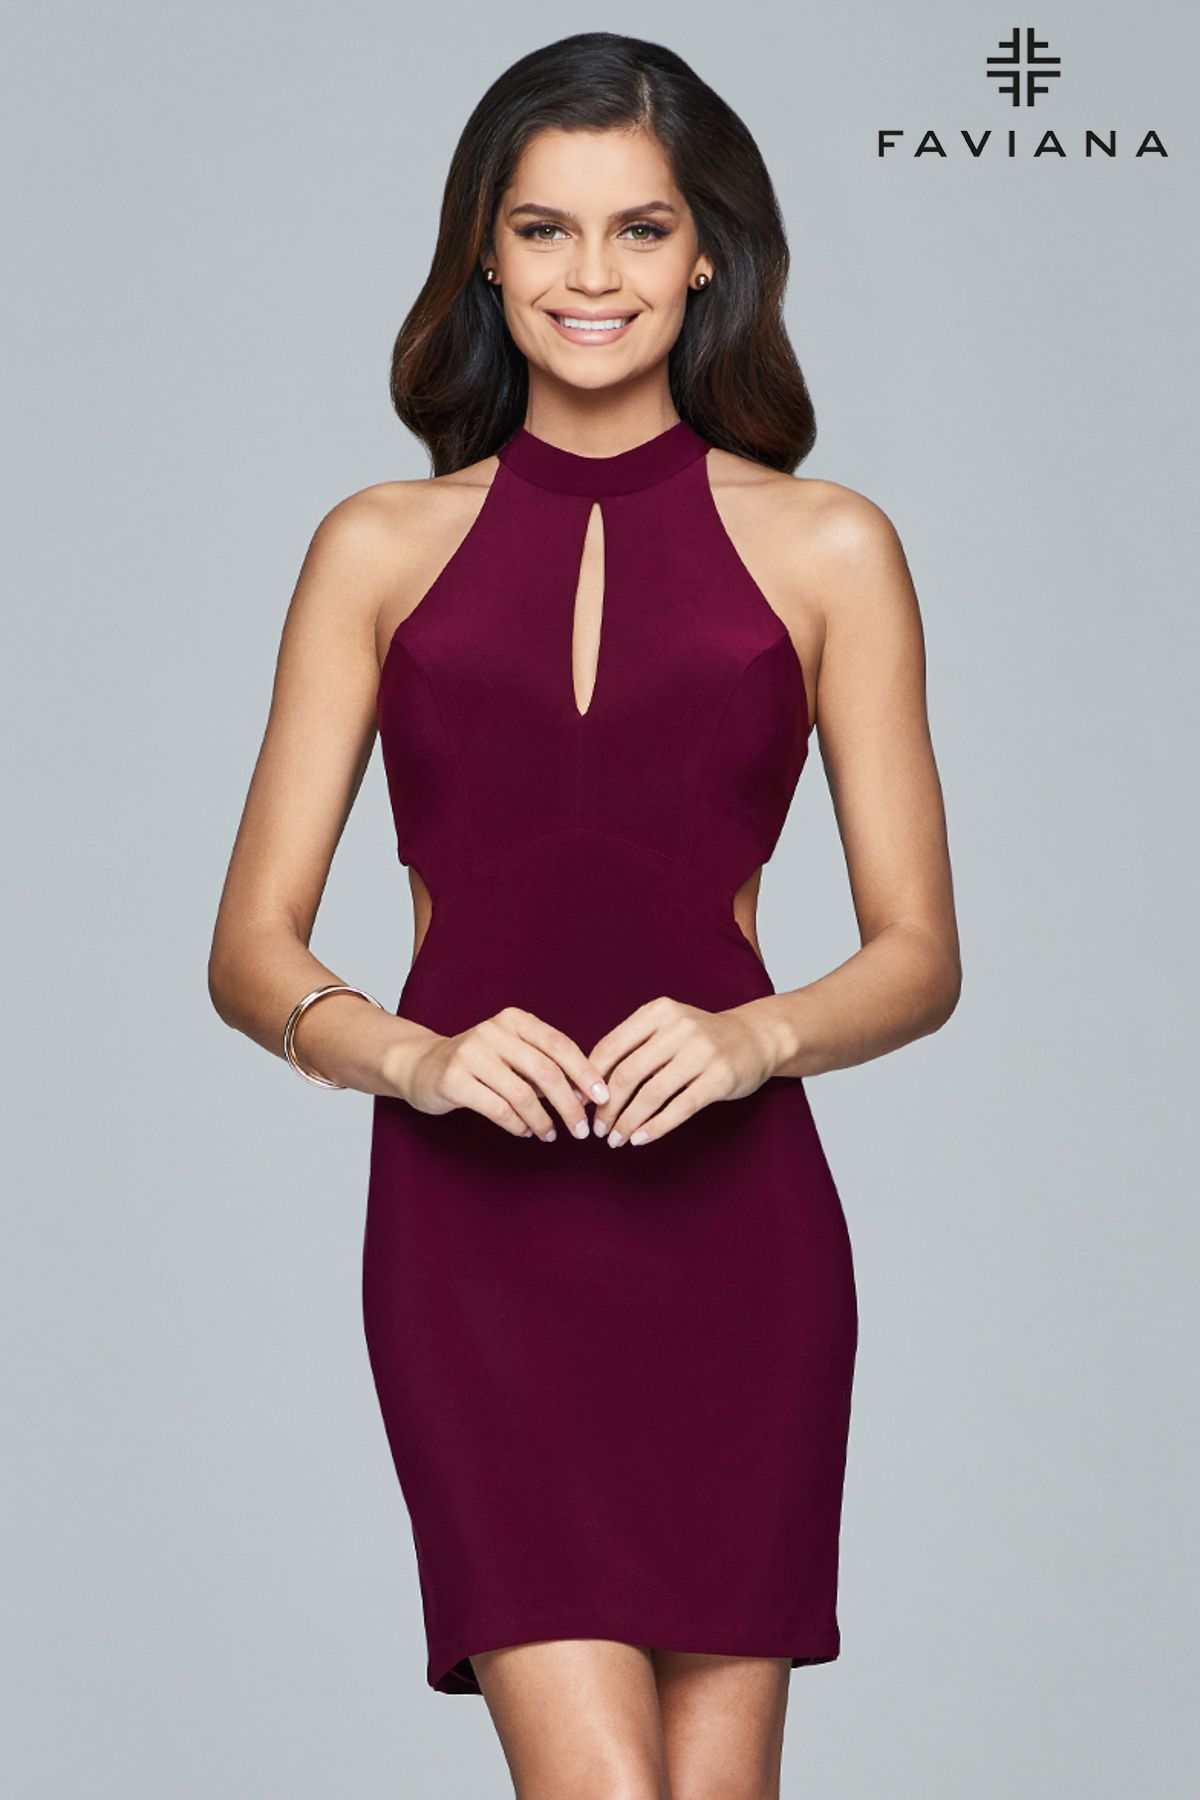 Fall faviana style s short jersey cocktail dress with cutouts